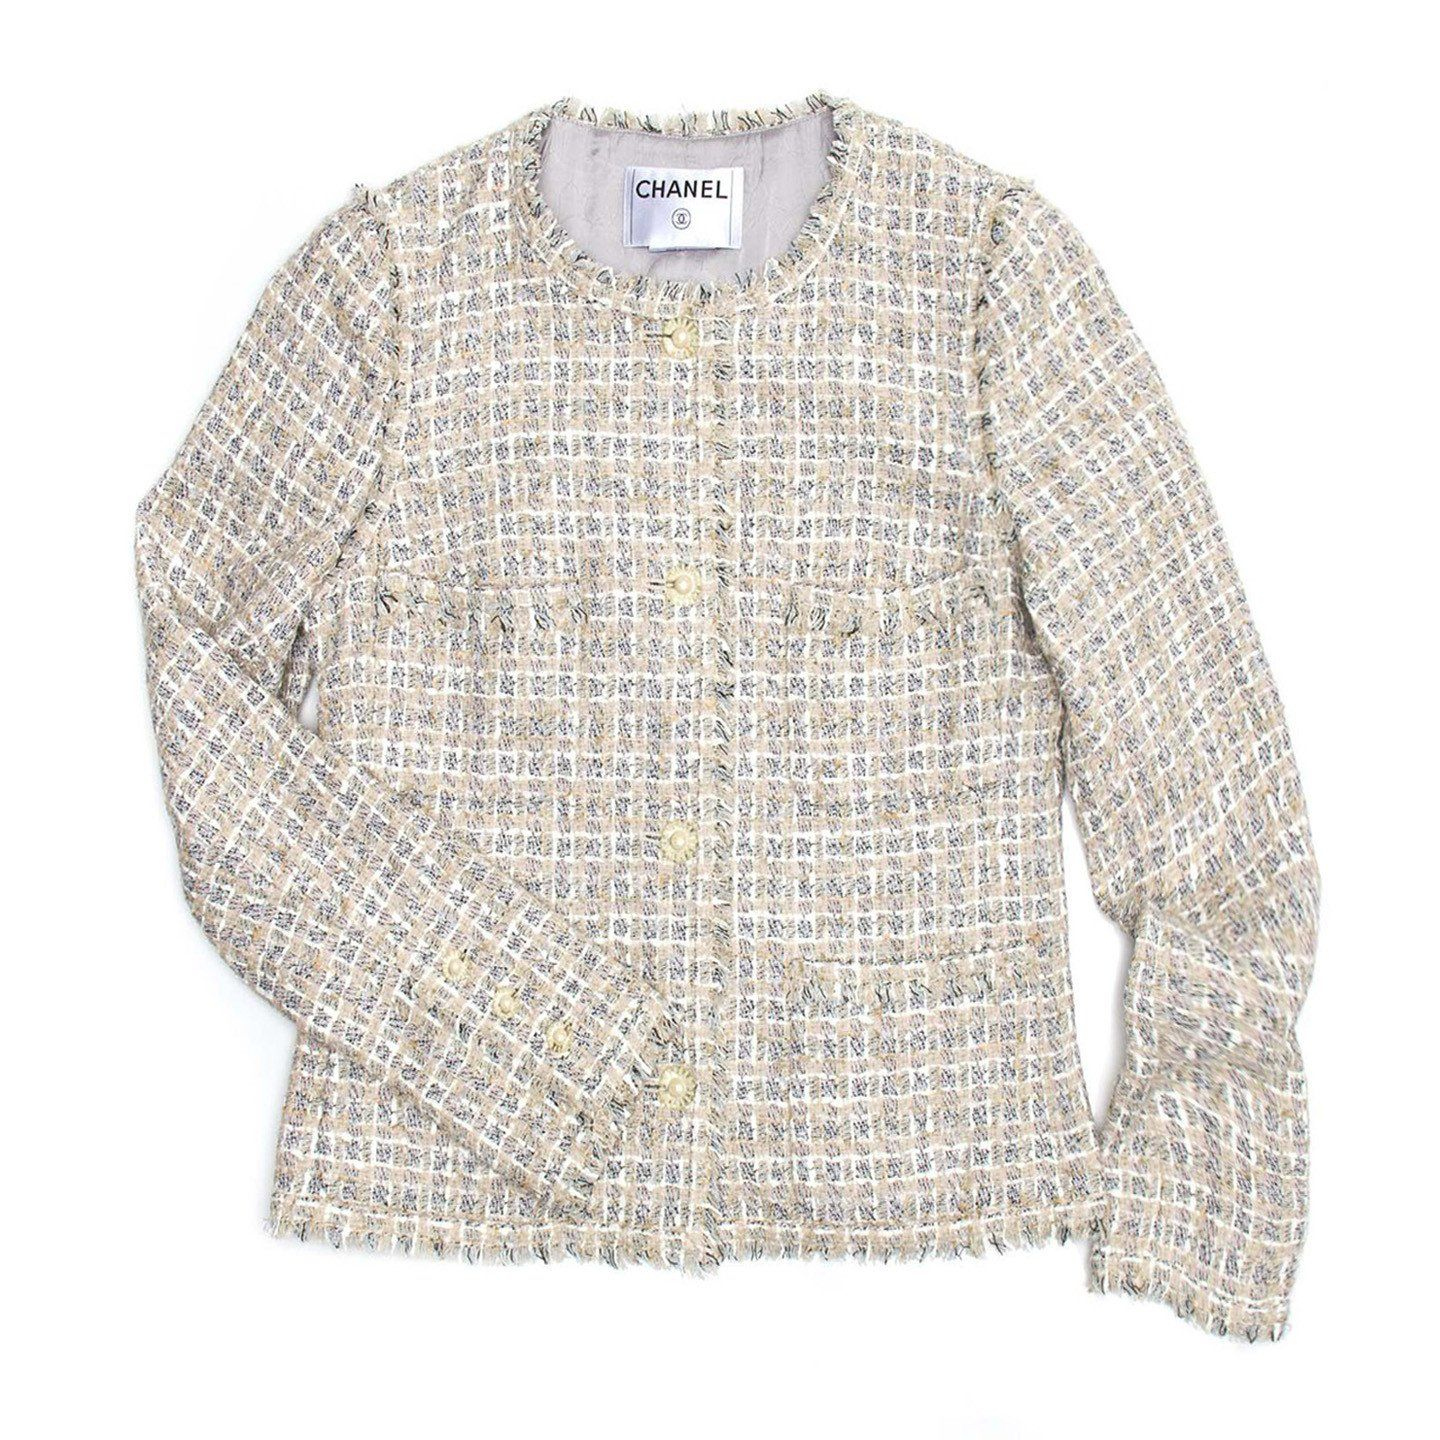 660e11794 Chanel Multicolor Cotton Tweed Jacket, size 40 (French) | Jacket ...